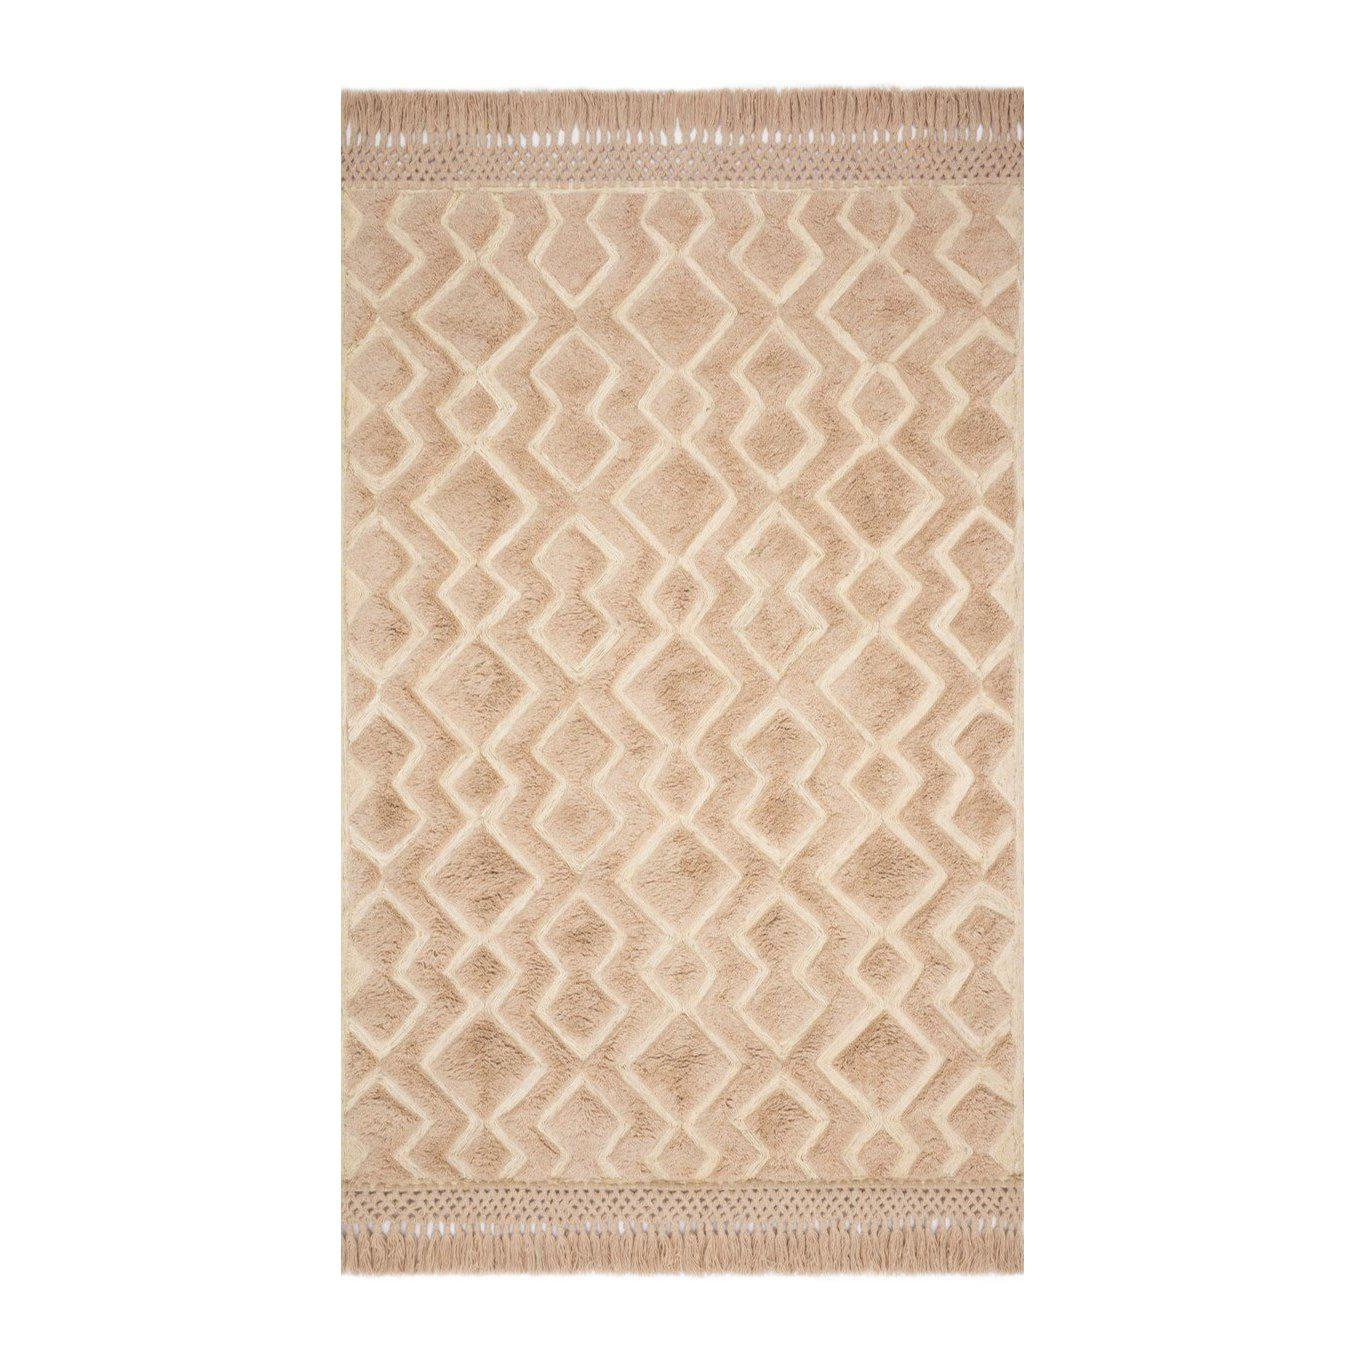 Joanna Gaines Laine Rug Collection - LAI-03 Blush/Natural-Loloi Rugs-Blue Hand Home